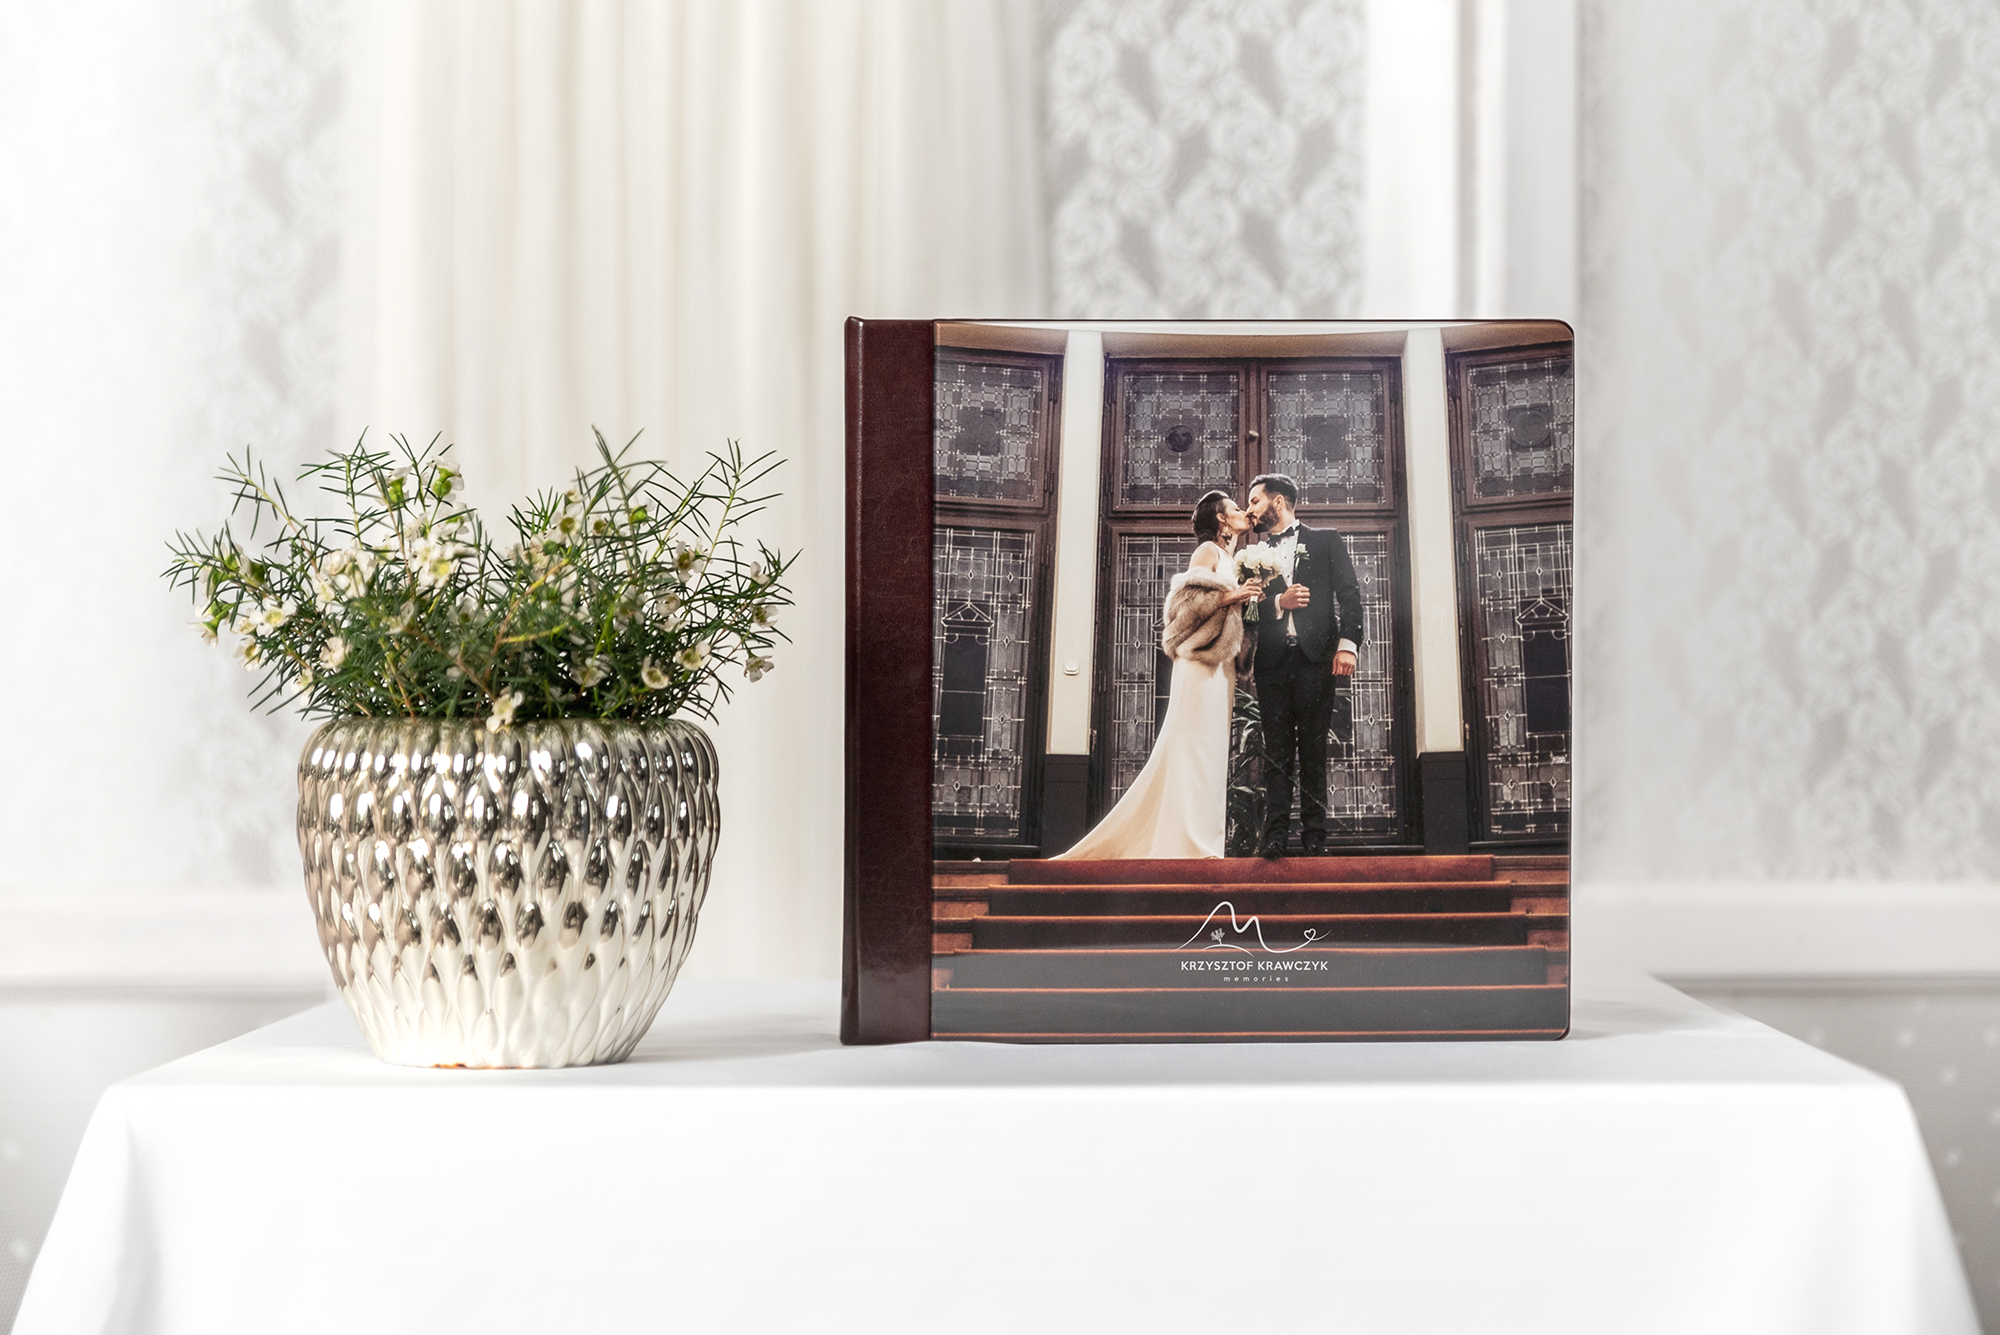 professional wedding album with a full acrylic cover